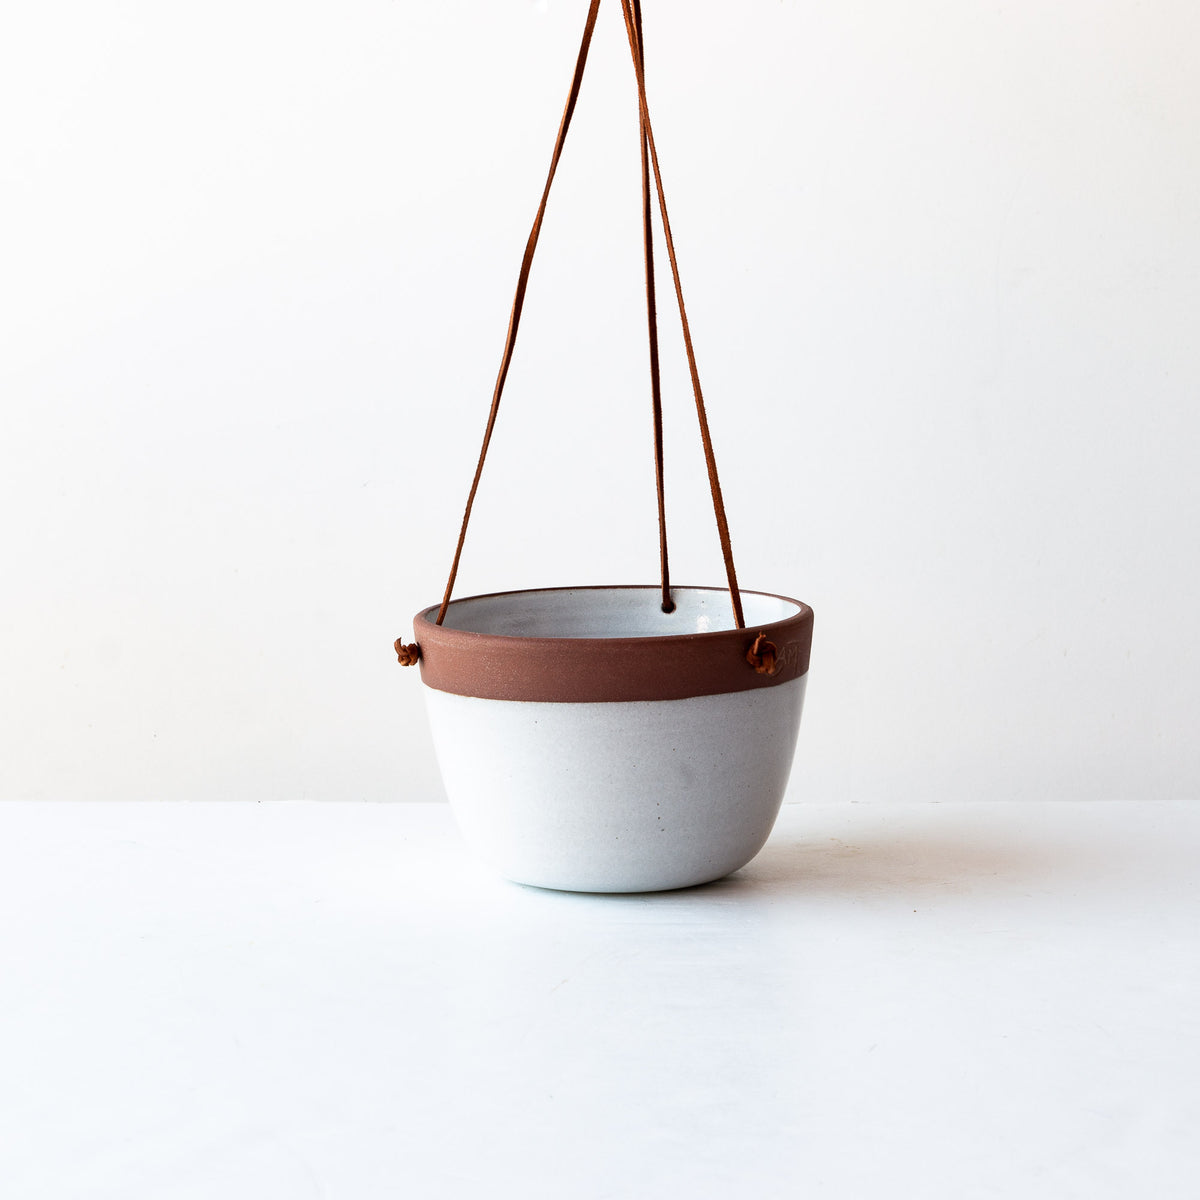 Cuba - Small Ceramic Hanging Planter